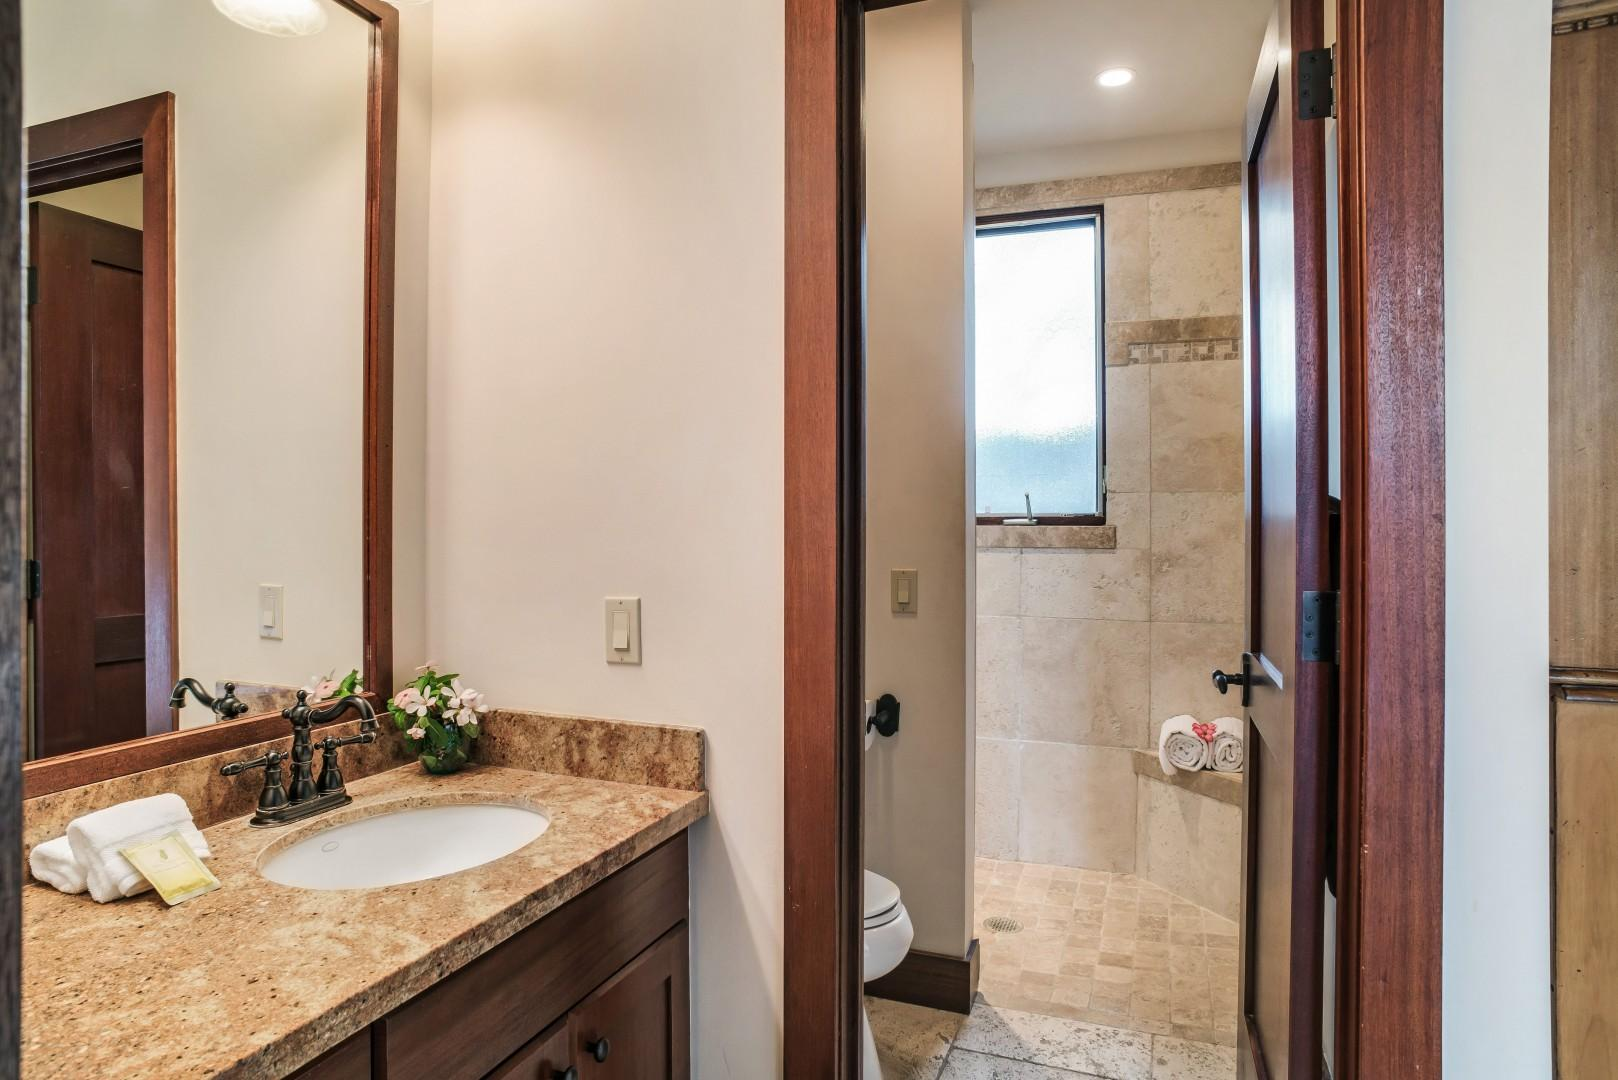 Guest Suite 4 Bath w/ Travertine Shower